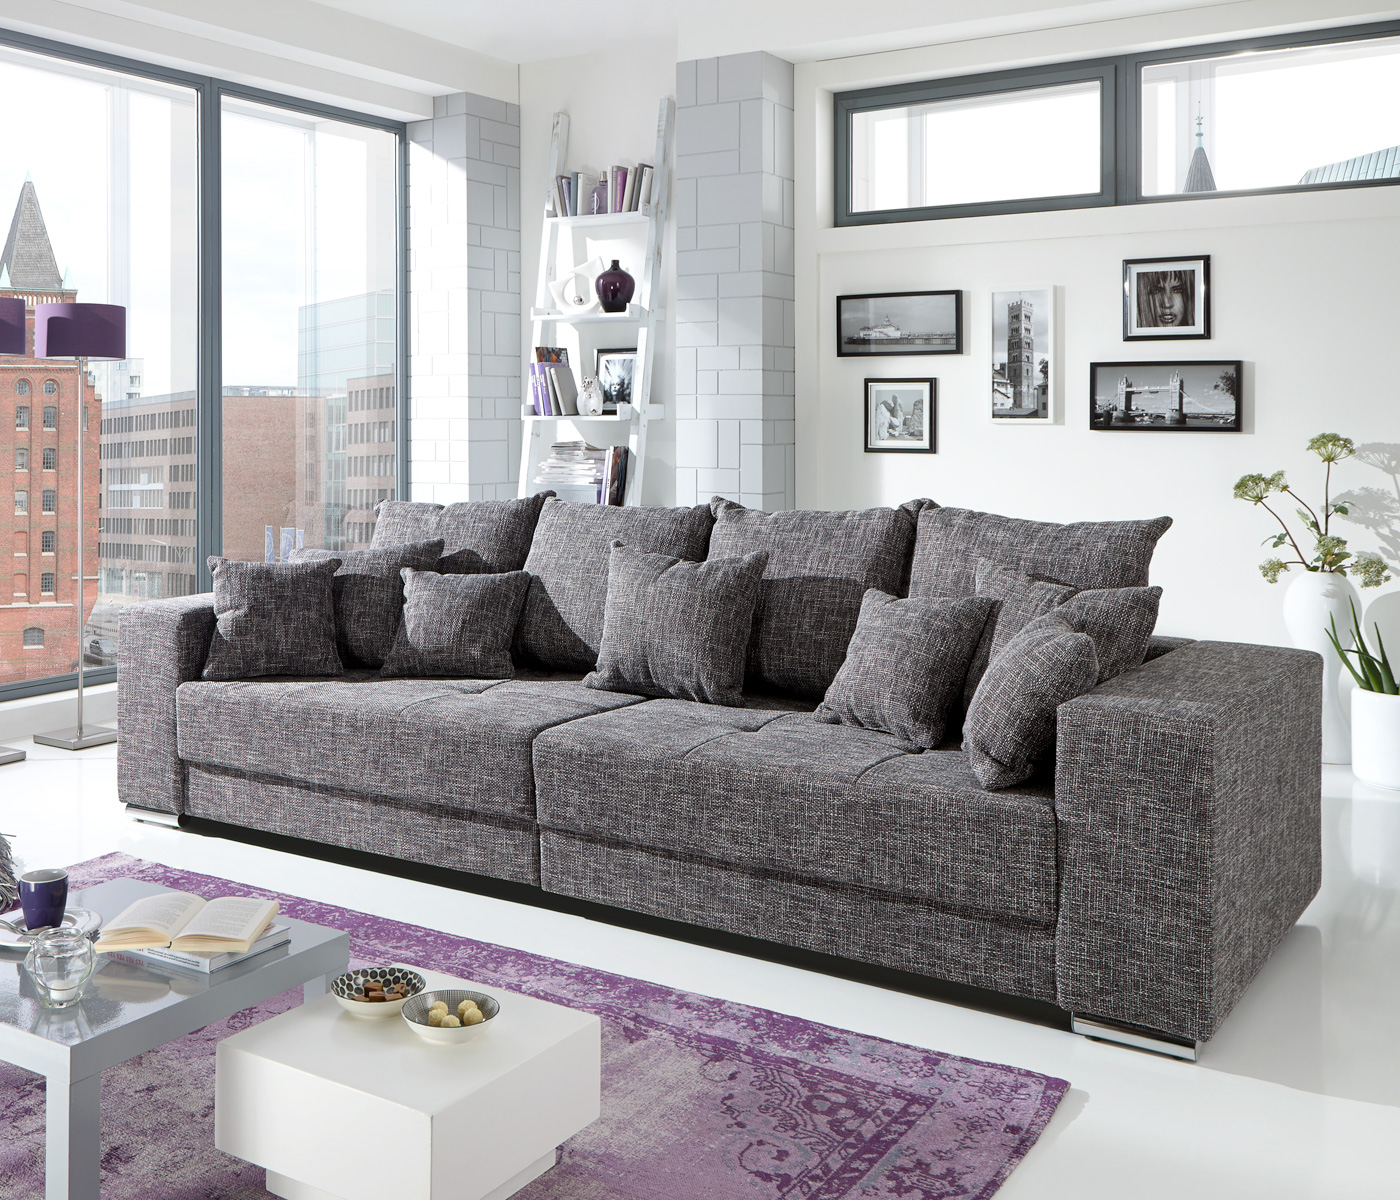 bigsofa adria big sofa couch in webstoff graubraun mit vielen kissen. Black Bedroom Furniture Sets. Home Design Ideas